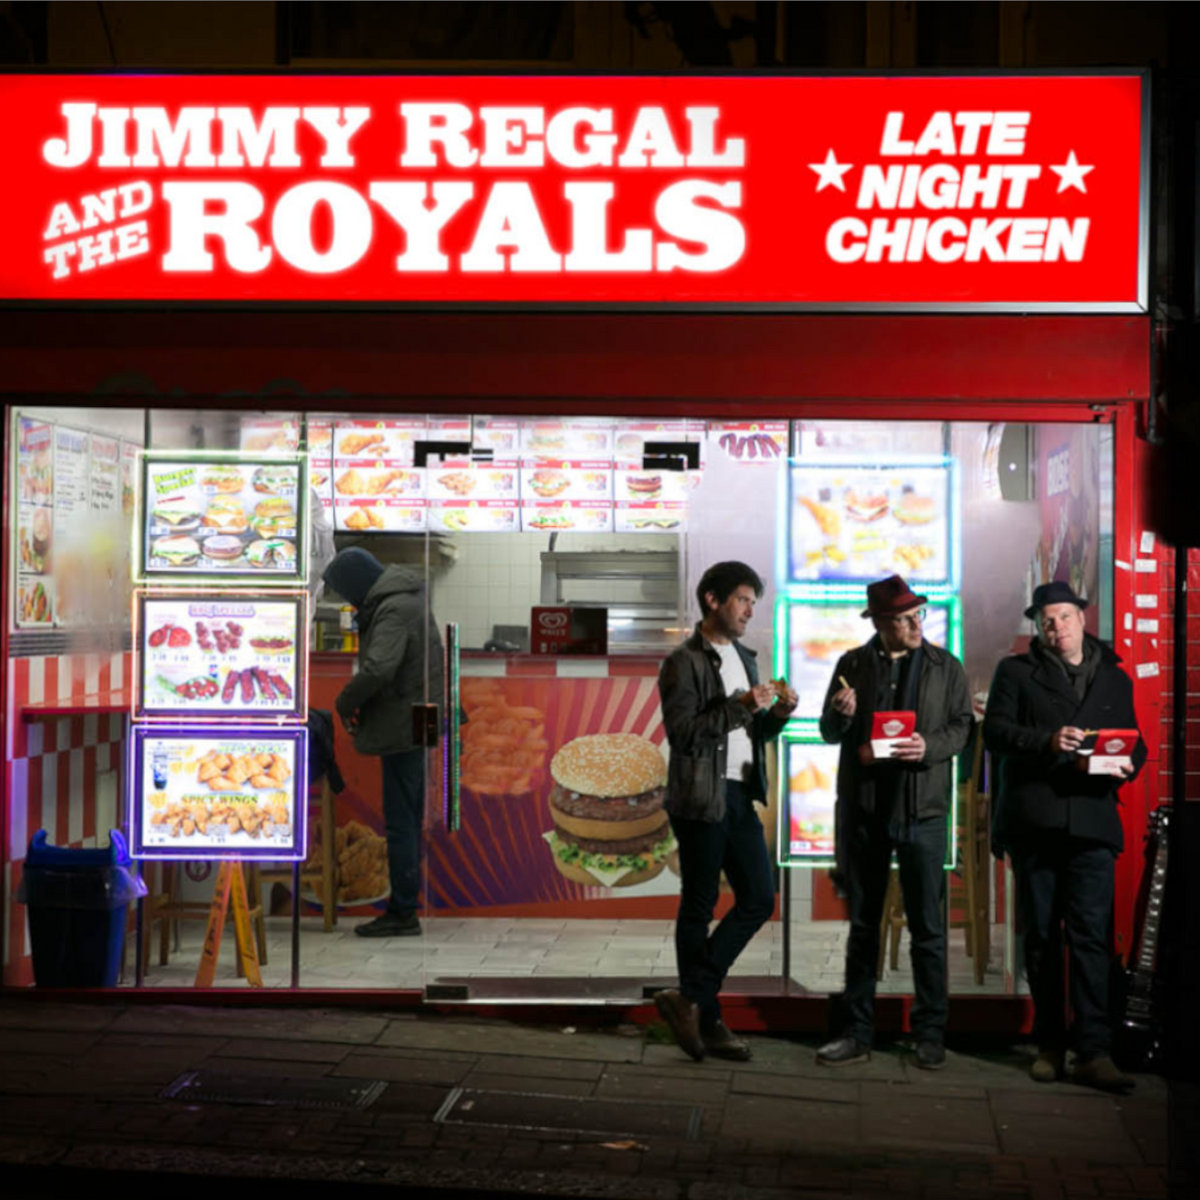 jimmy regal and the royals late night chicken